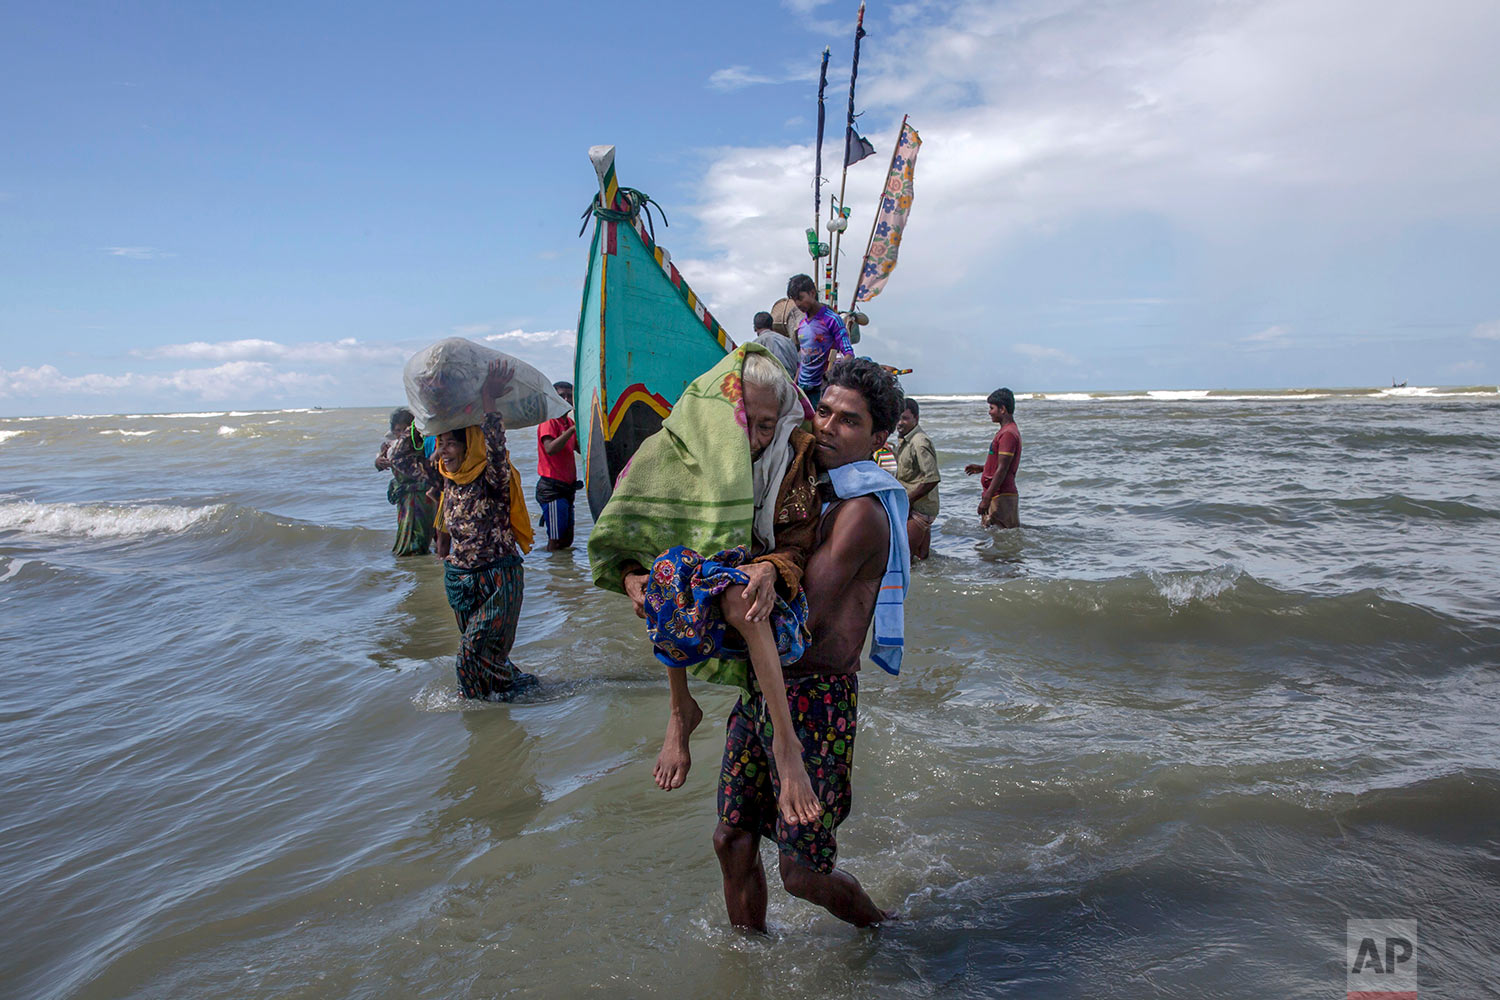 A Rohingya Muslim man walks to shore carrying an elderly woman after they arrived on a boat from Myanmar to Bangladesh in Shah Porir Dwip, Bangladesh, Thursday, Sept. 14, 2017. Nearly three weeks into a mass exodus of Rohingya fleeing violence in Myanmar, thousands were still flooding across the border Thursday in search of help and safety in teeming refugee settlements in Bangladesh. (AP Photo/Dar Yasin)